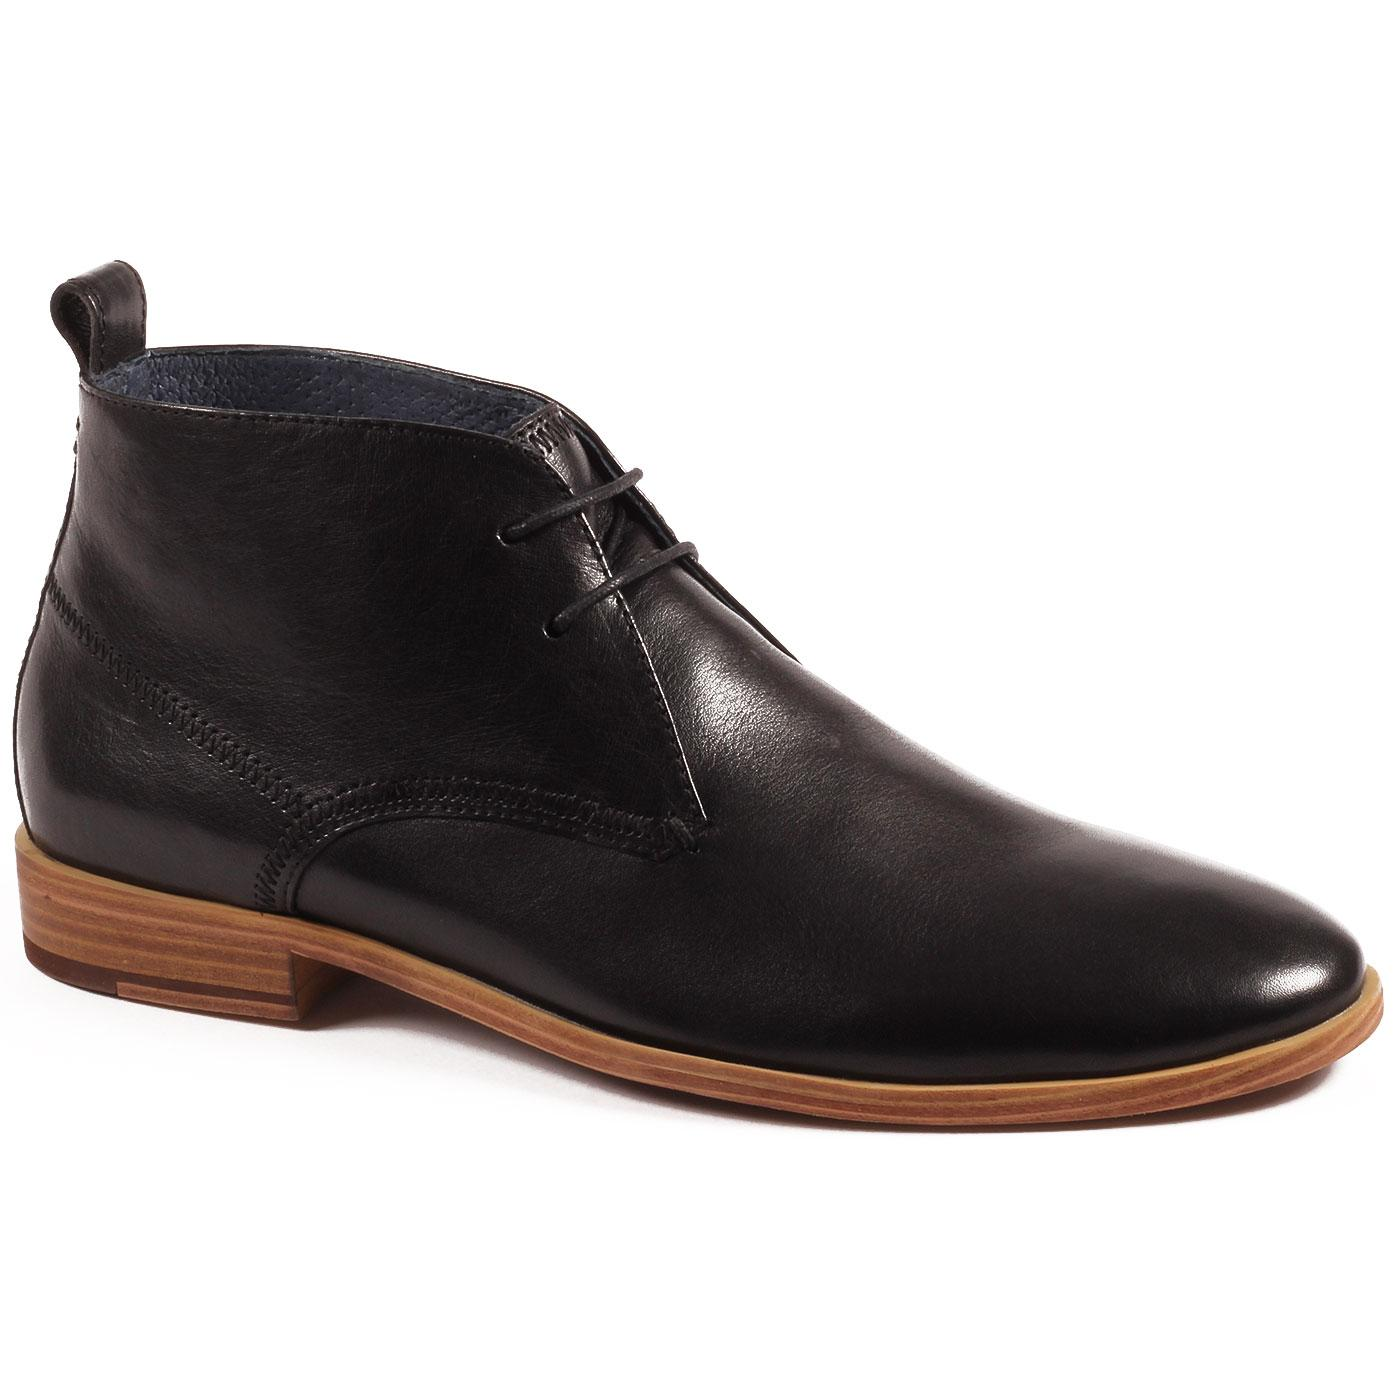 Player PAOLO VANDINI Mod Leather Chukka Boots (B)